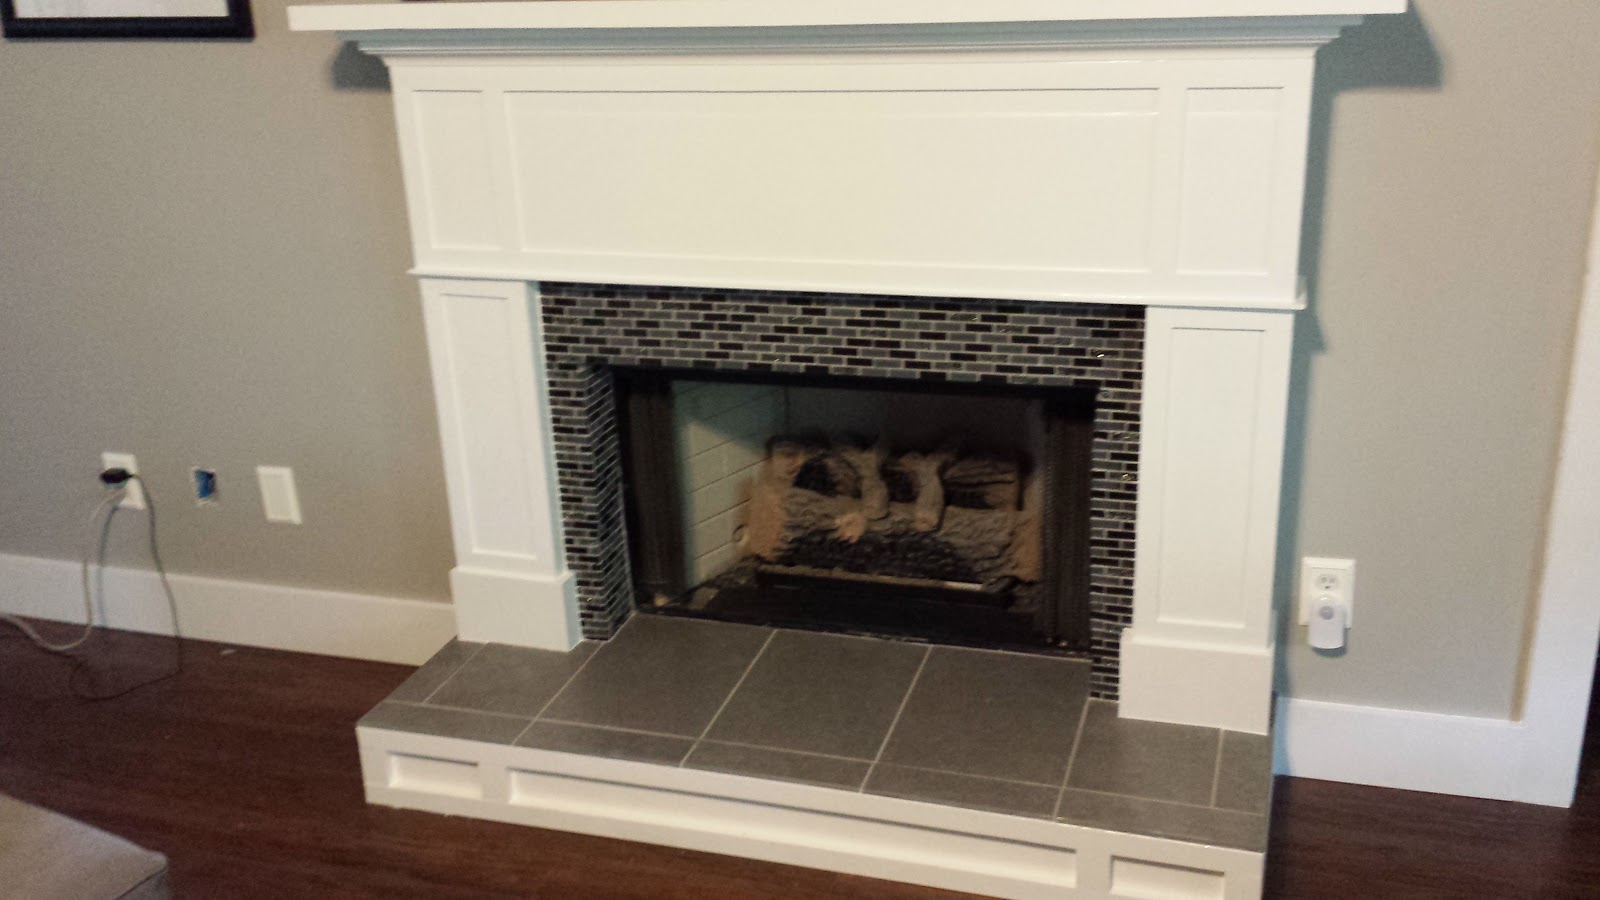 Deck our home fireplace tutorial 1 hearth tile prep fireplace tutorial 1 hearth tile prep tyukafo